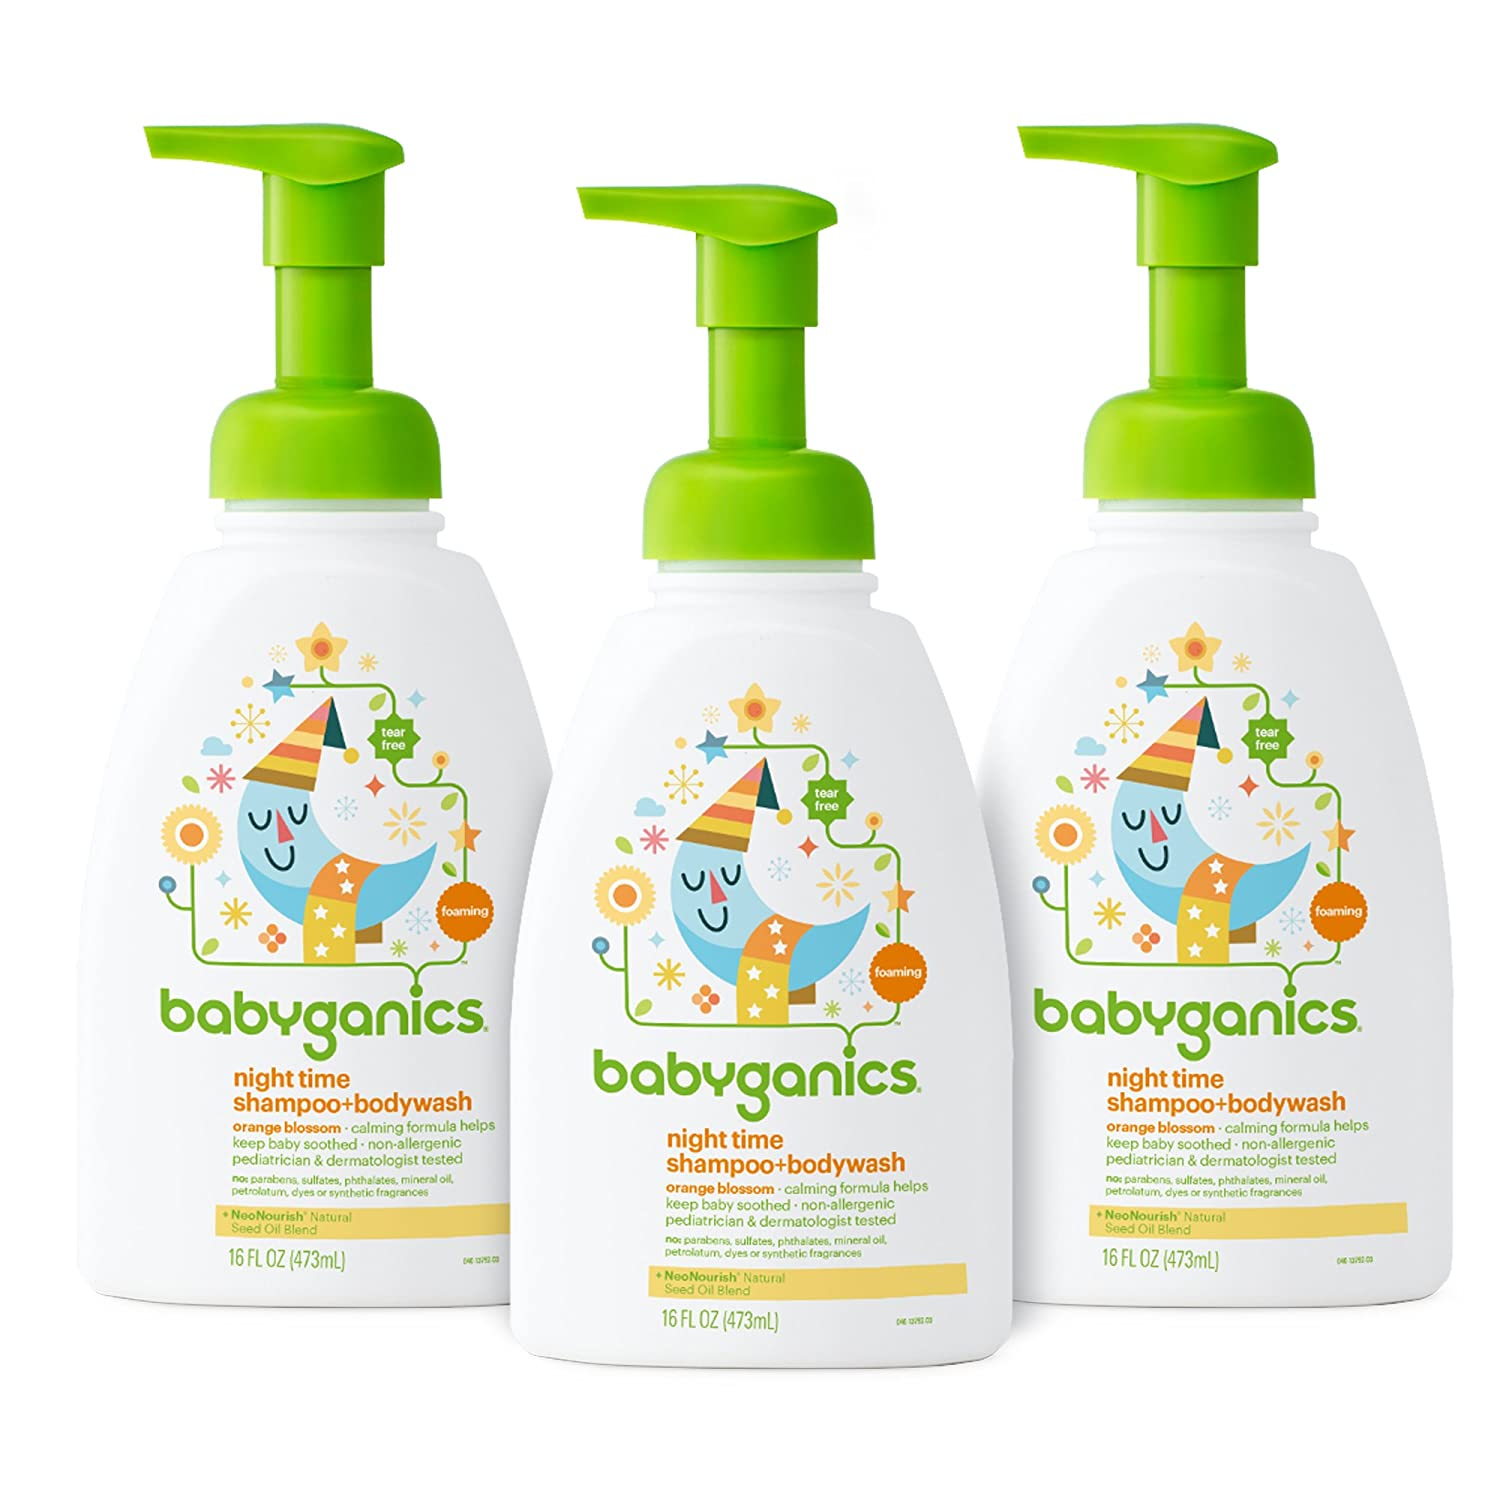 Babyganics Baby Shampoo and Body Wash, Fragrance Free, 3 Pack Baby bath products baby bubble bath Baby Ganics Baby Laundry Detergent